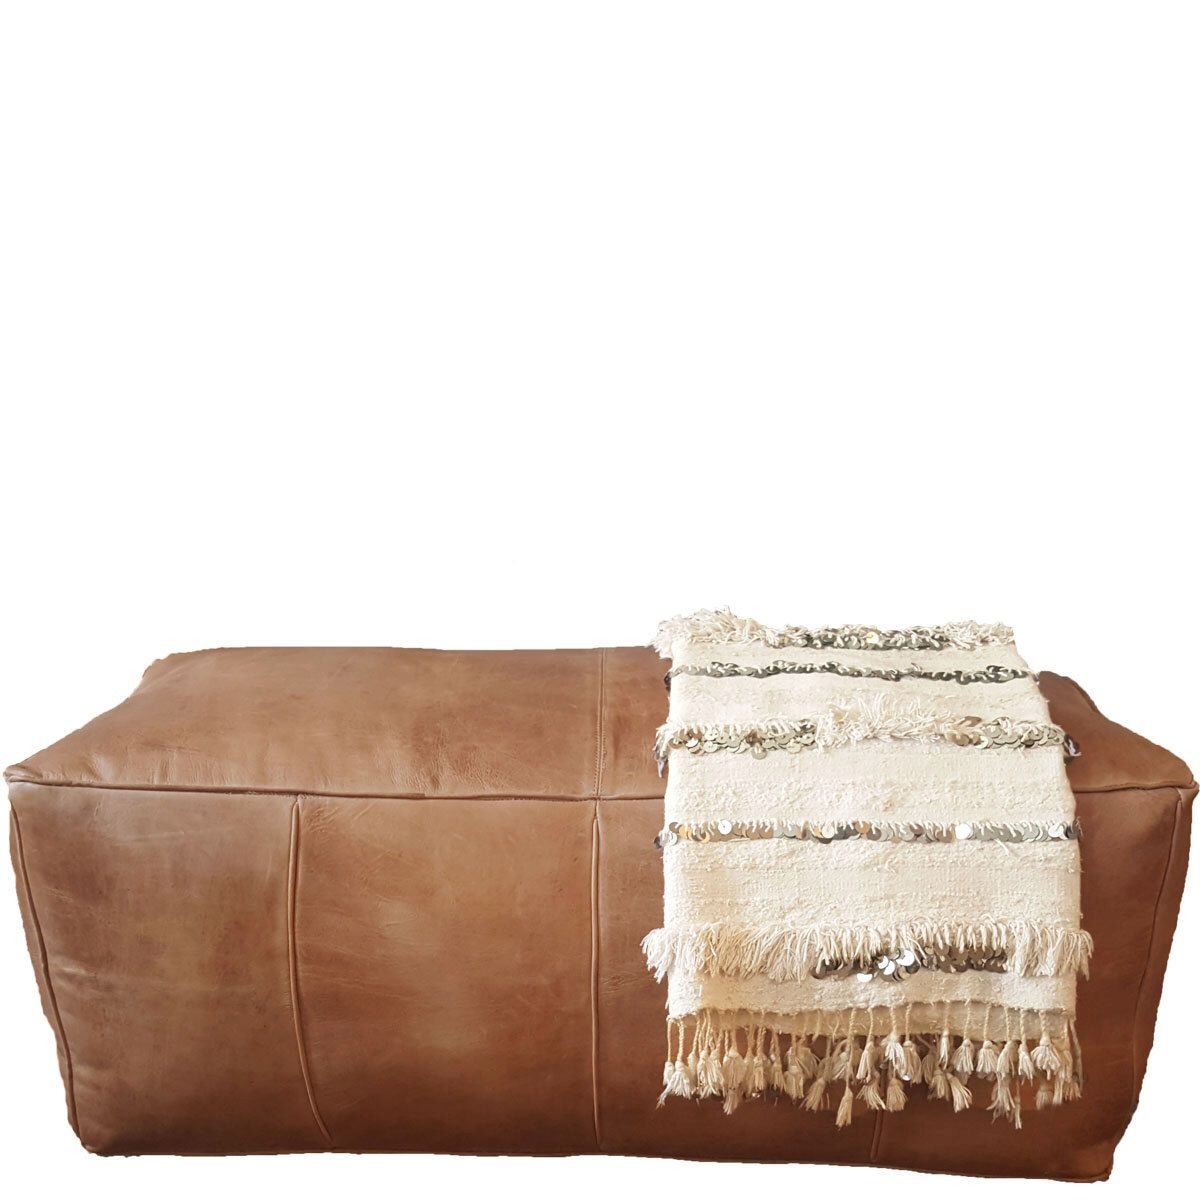 Fabulous Pin By Shane Redsar On My Style Pinboard Leather Pouf Ibusinesslaw Wood Chair Design Ideas Ibusinesslaworg